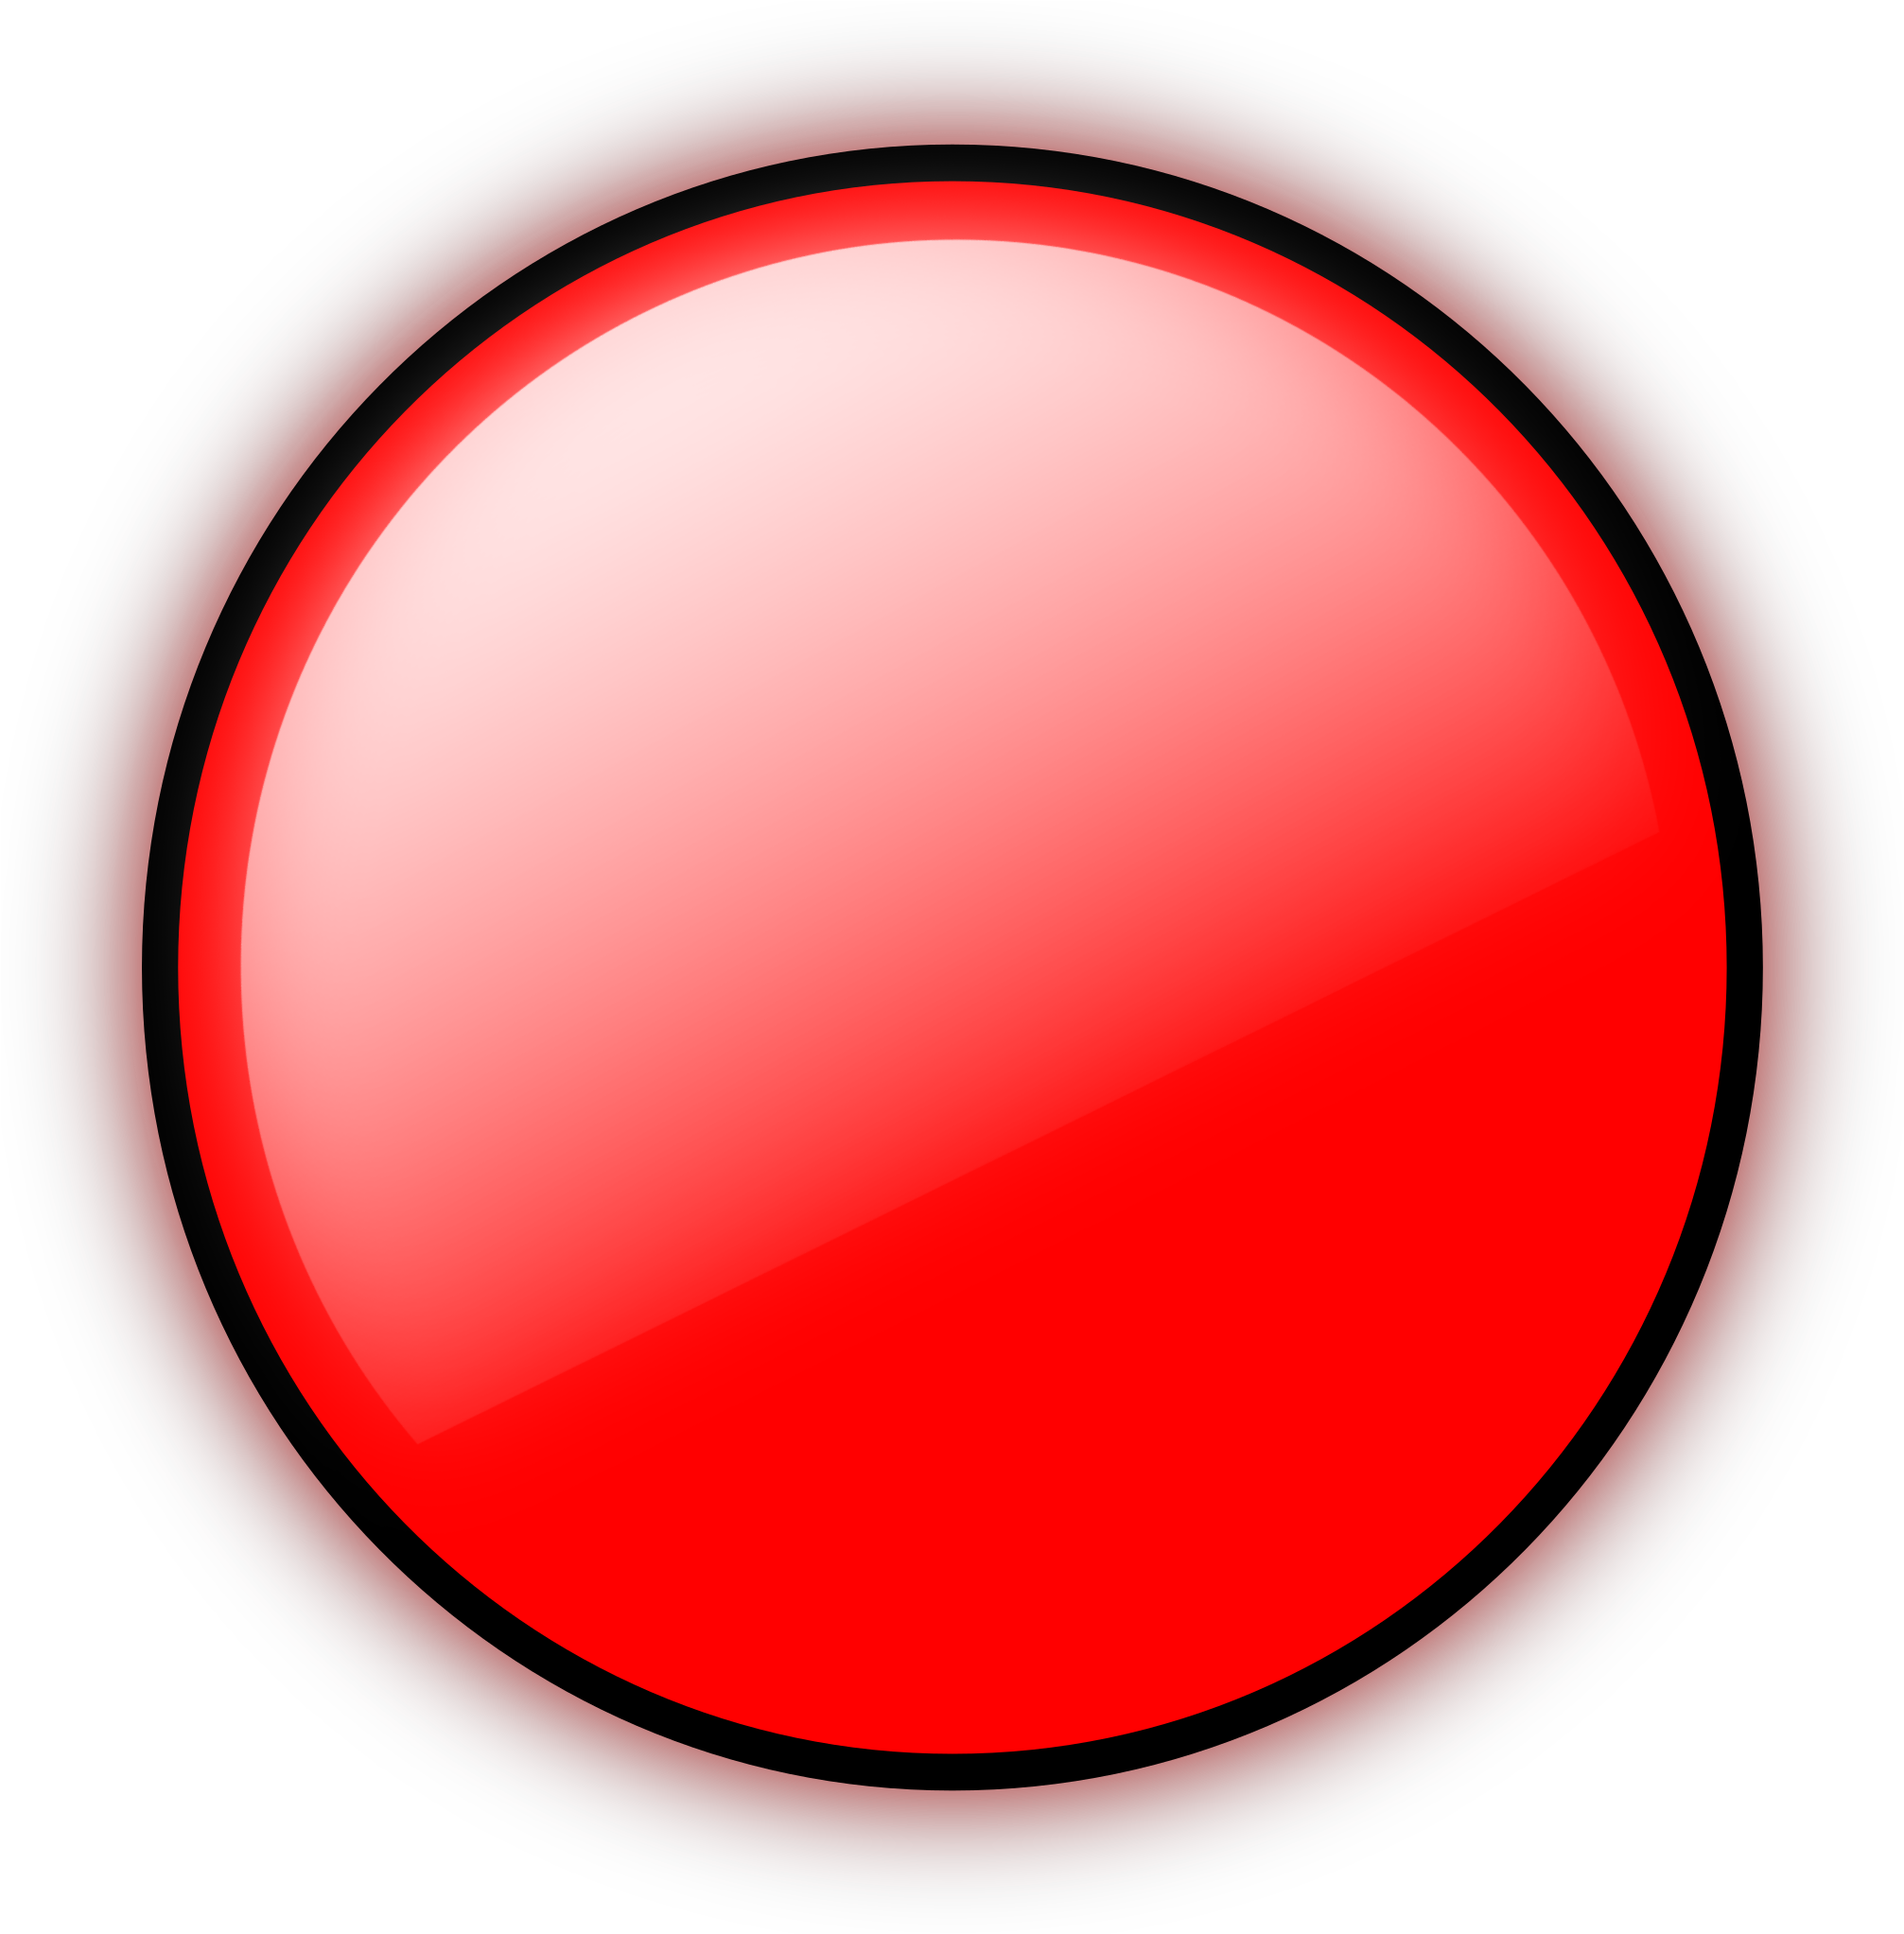 Transparent circle time clipart - Clipart - Red Circle